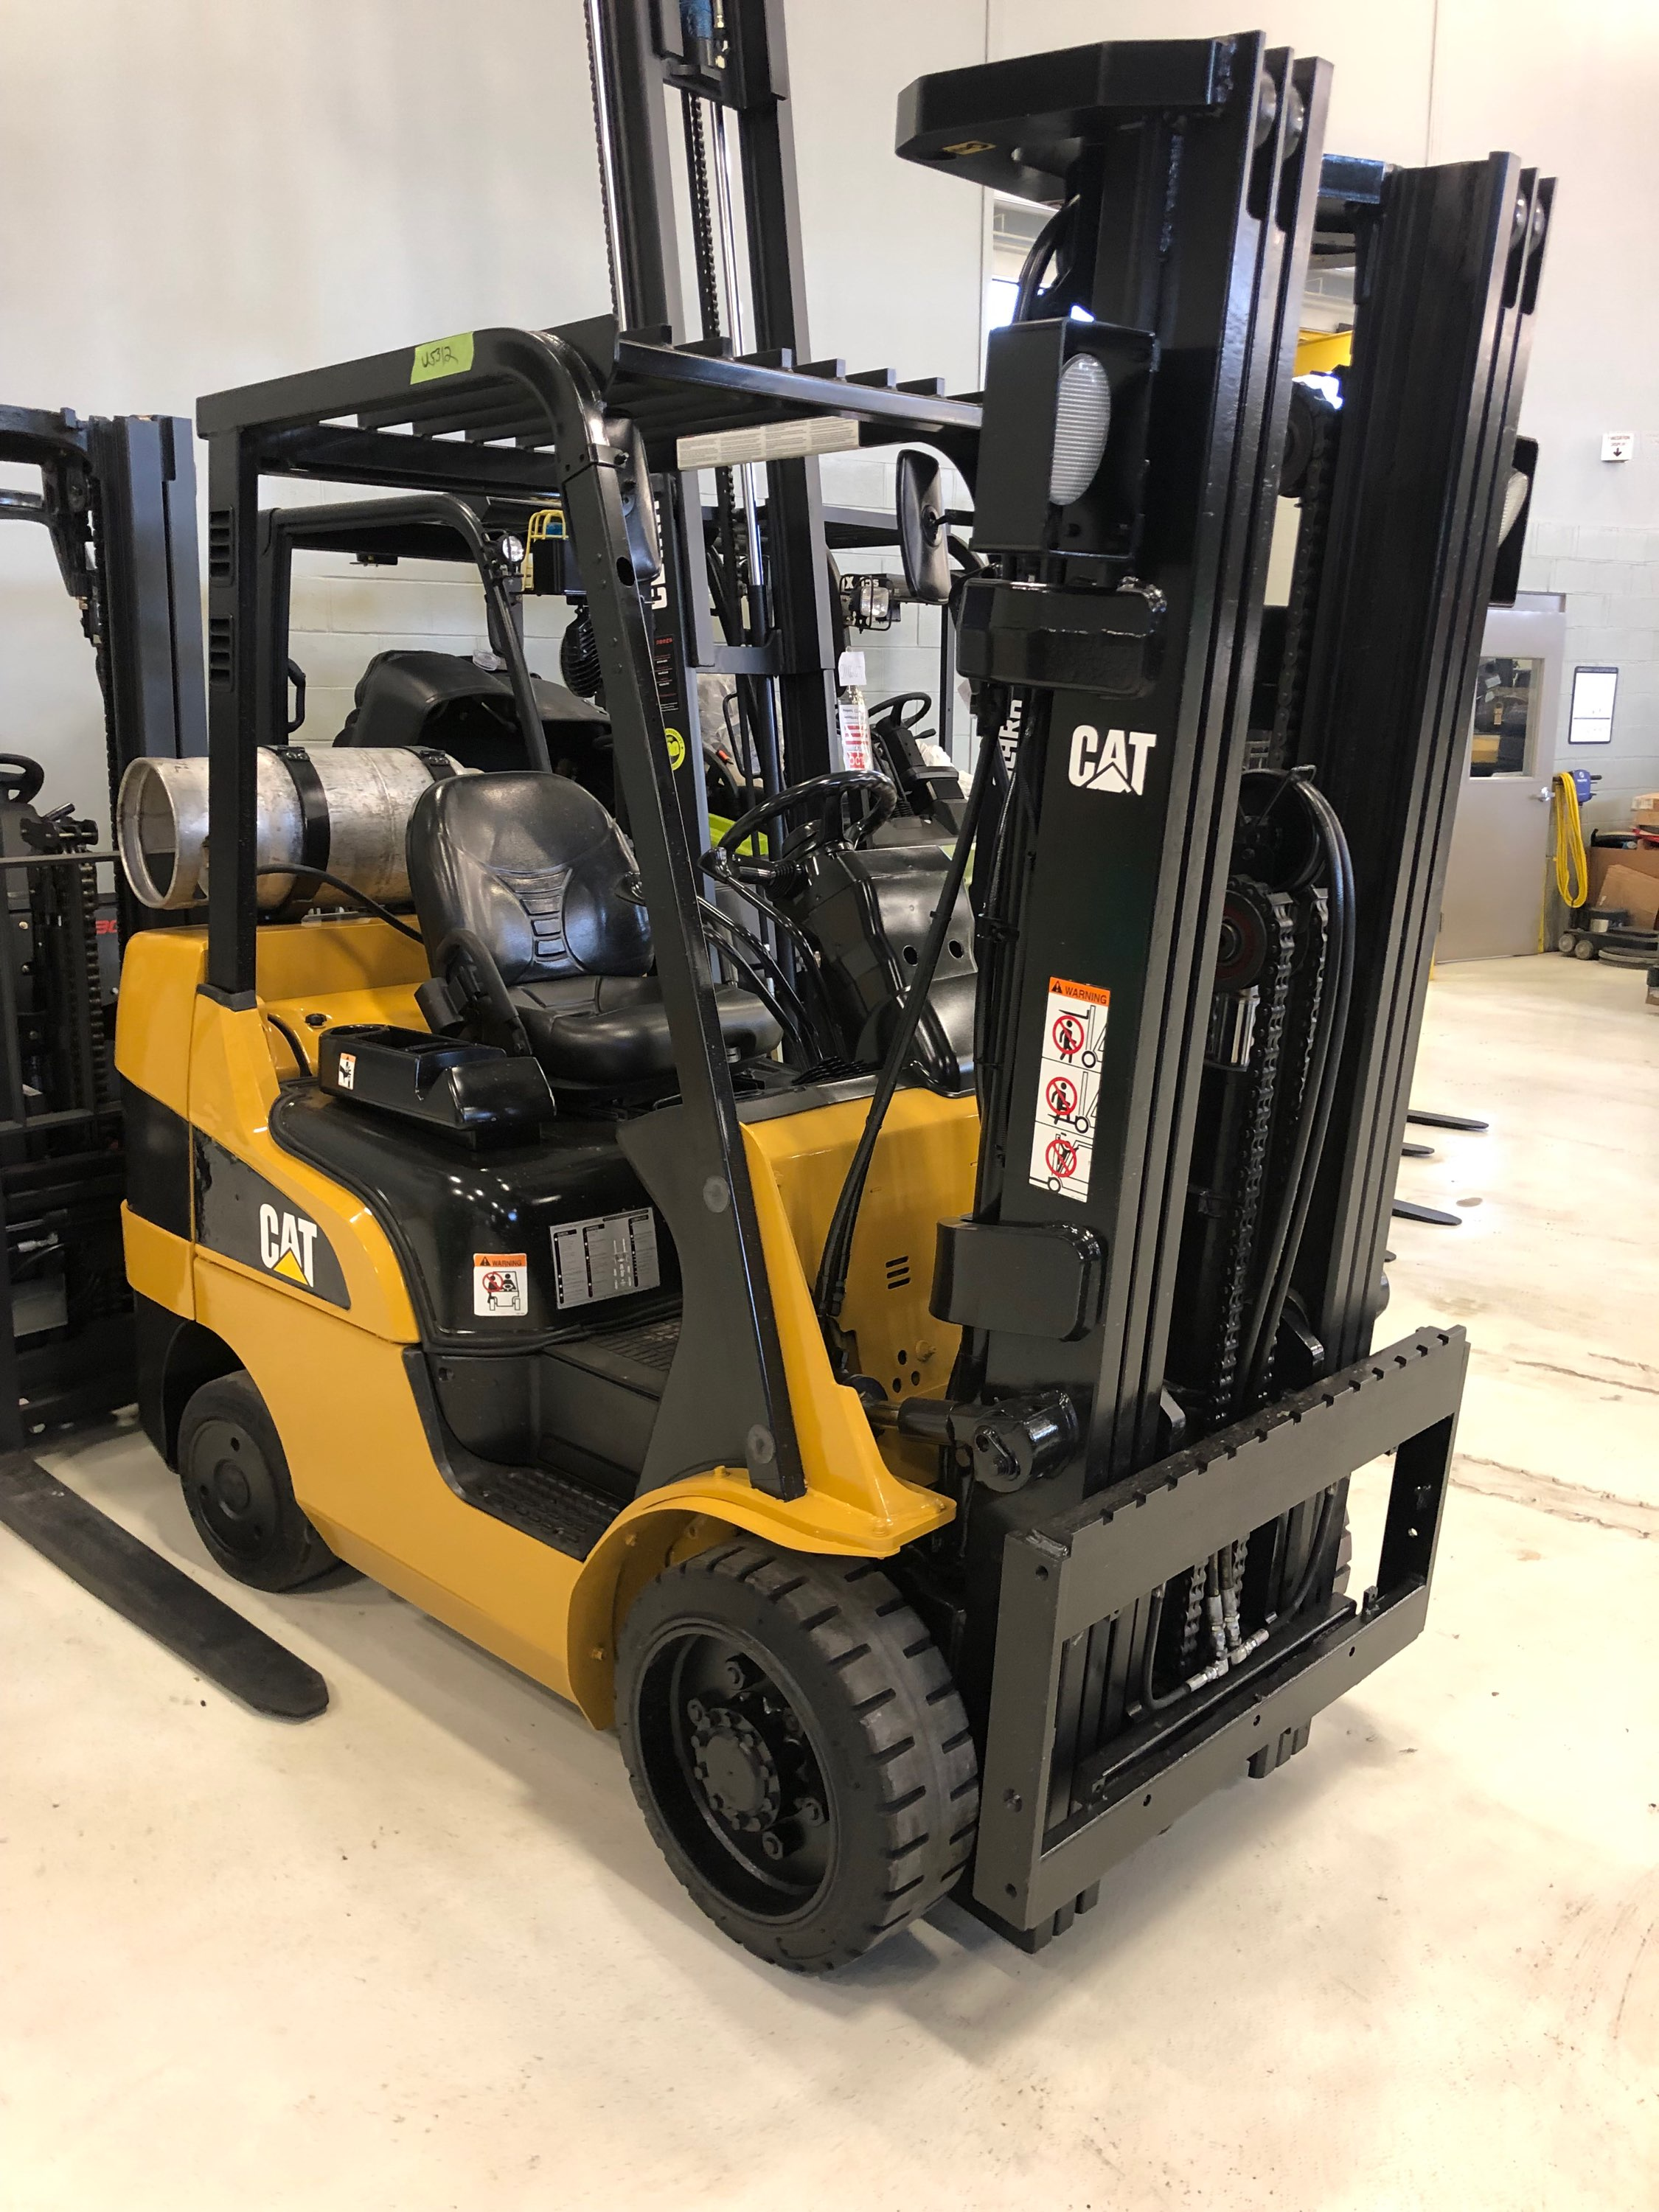 - We found our new forklift! She's a beauty in caution-yellow.